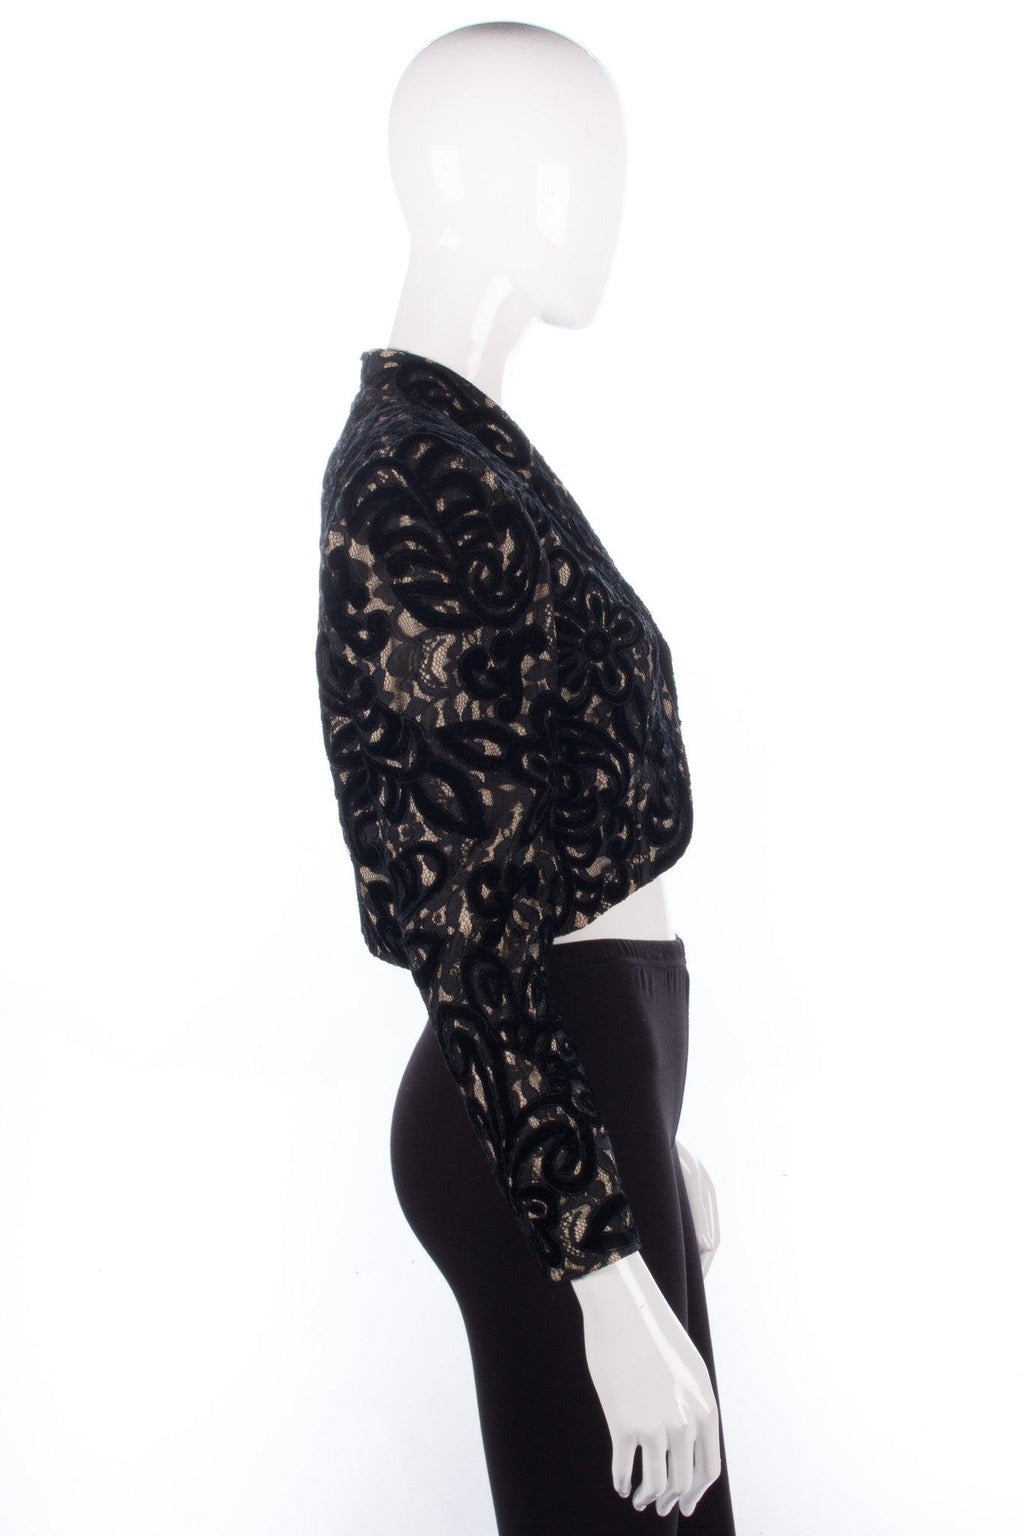 After Six Cropped Bolero Jacket with Velvet and Lace Black Size 10/12